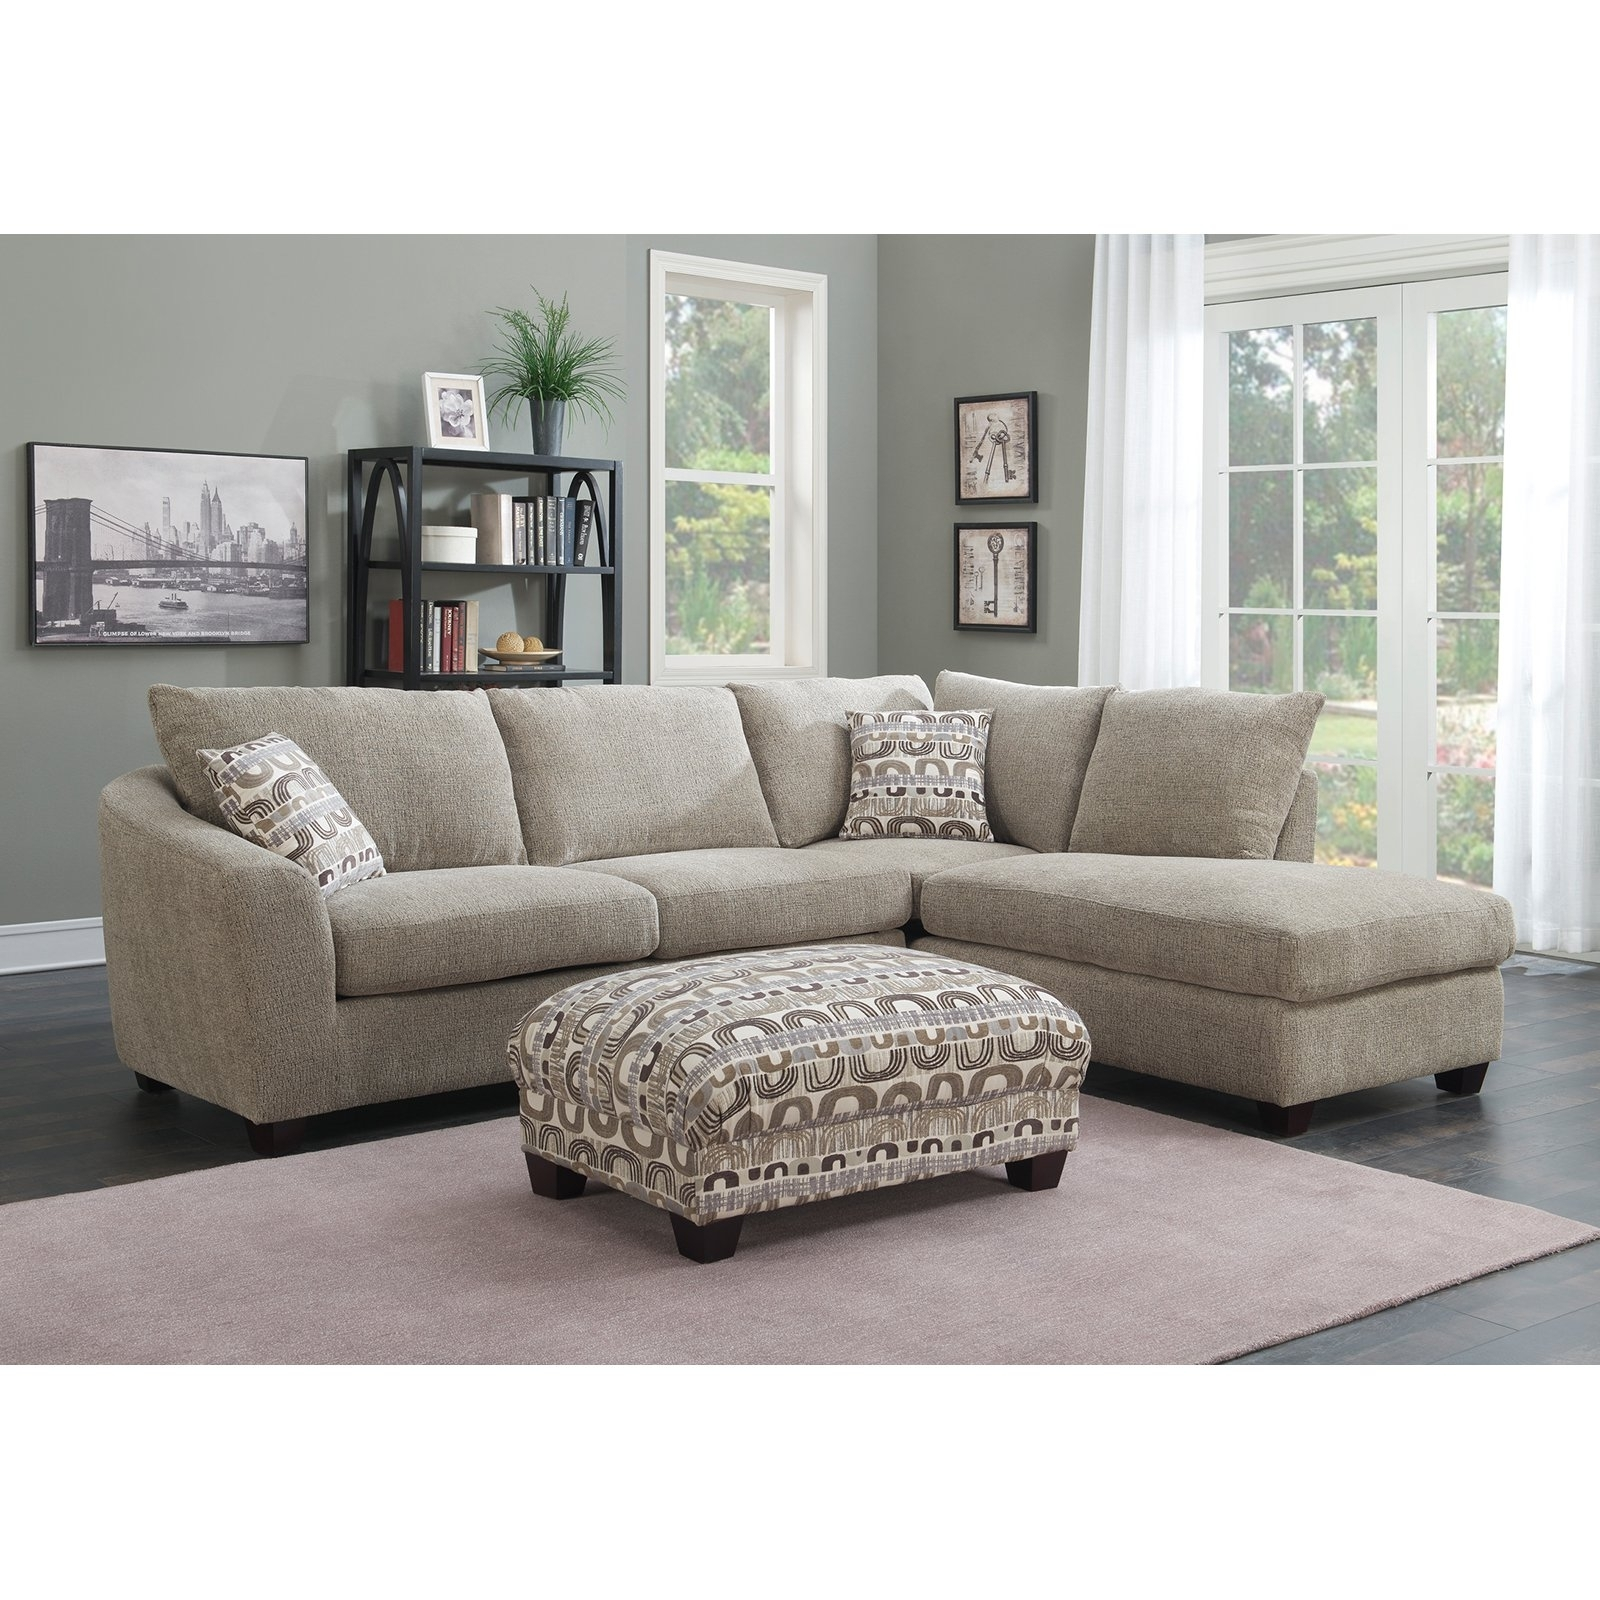 2 Piece Sectional With Chaise - Tidex within Arrowmask 2 Piece Sectionals With Laf Chaise (Image 1 of 30)